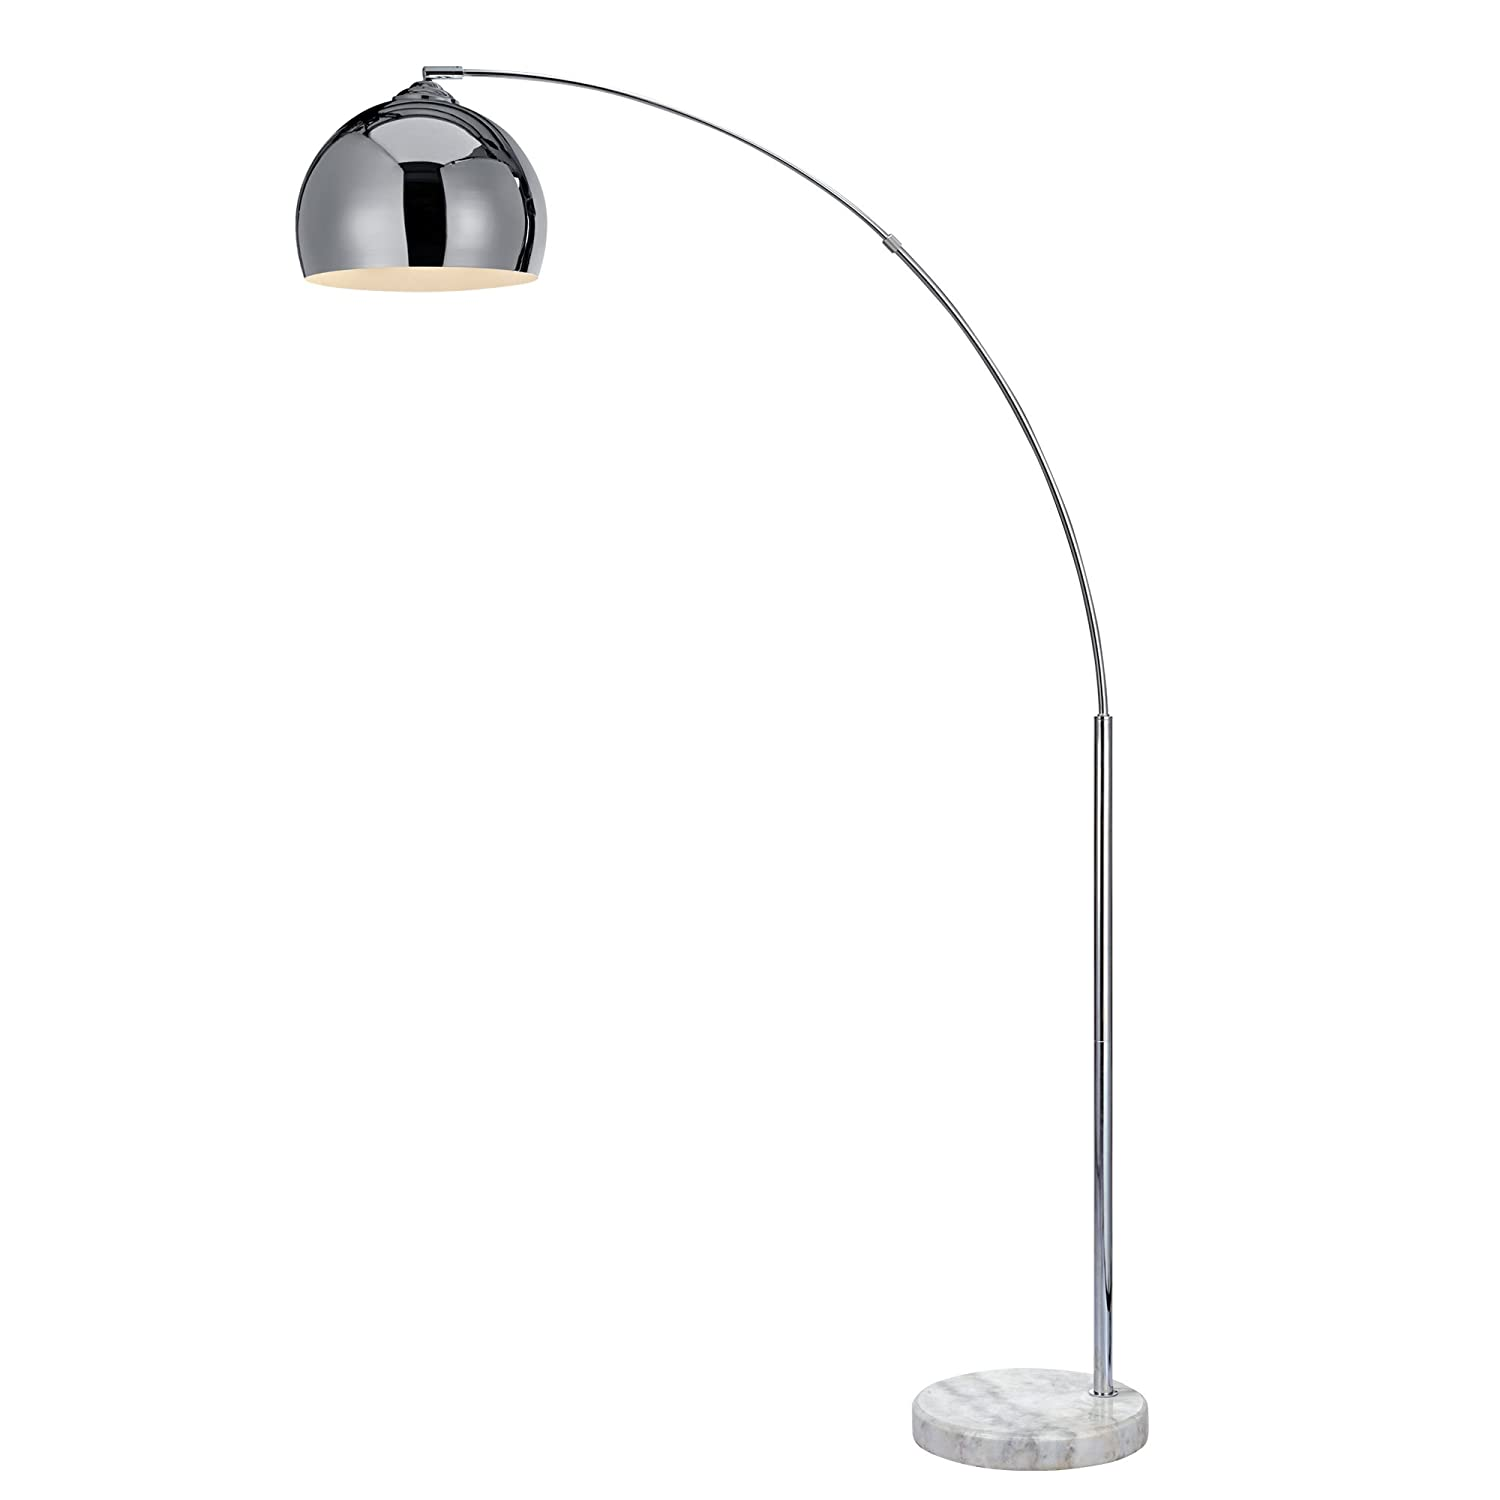 Versanora arquer 170cm modern arc floor lamp reading light for versanora arquer 170cm modern arc floor lamp reading light for living room bedroom marble base polished chrome finish amazon lighting mozeypictures Choice Image